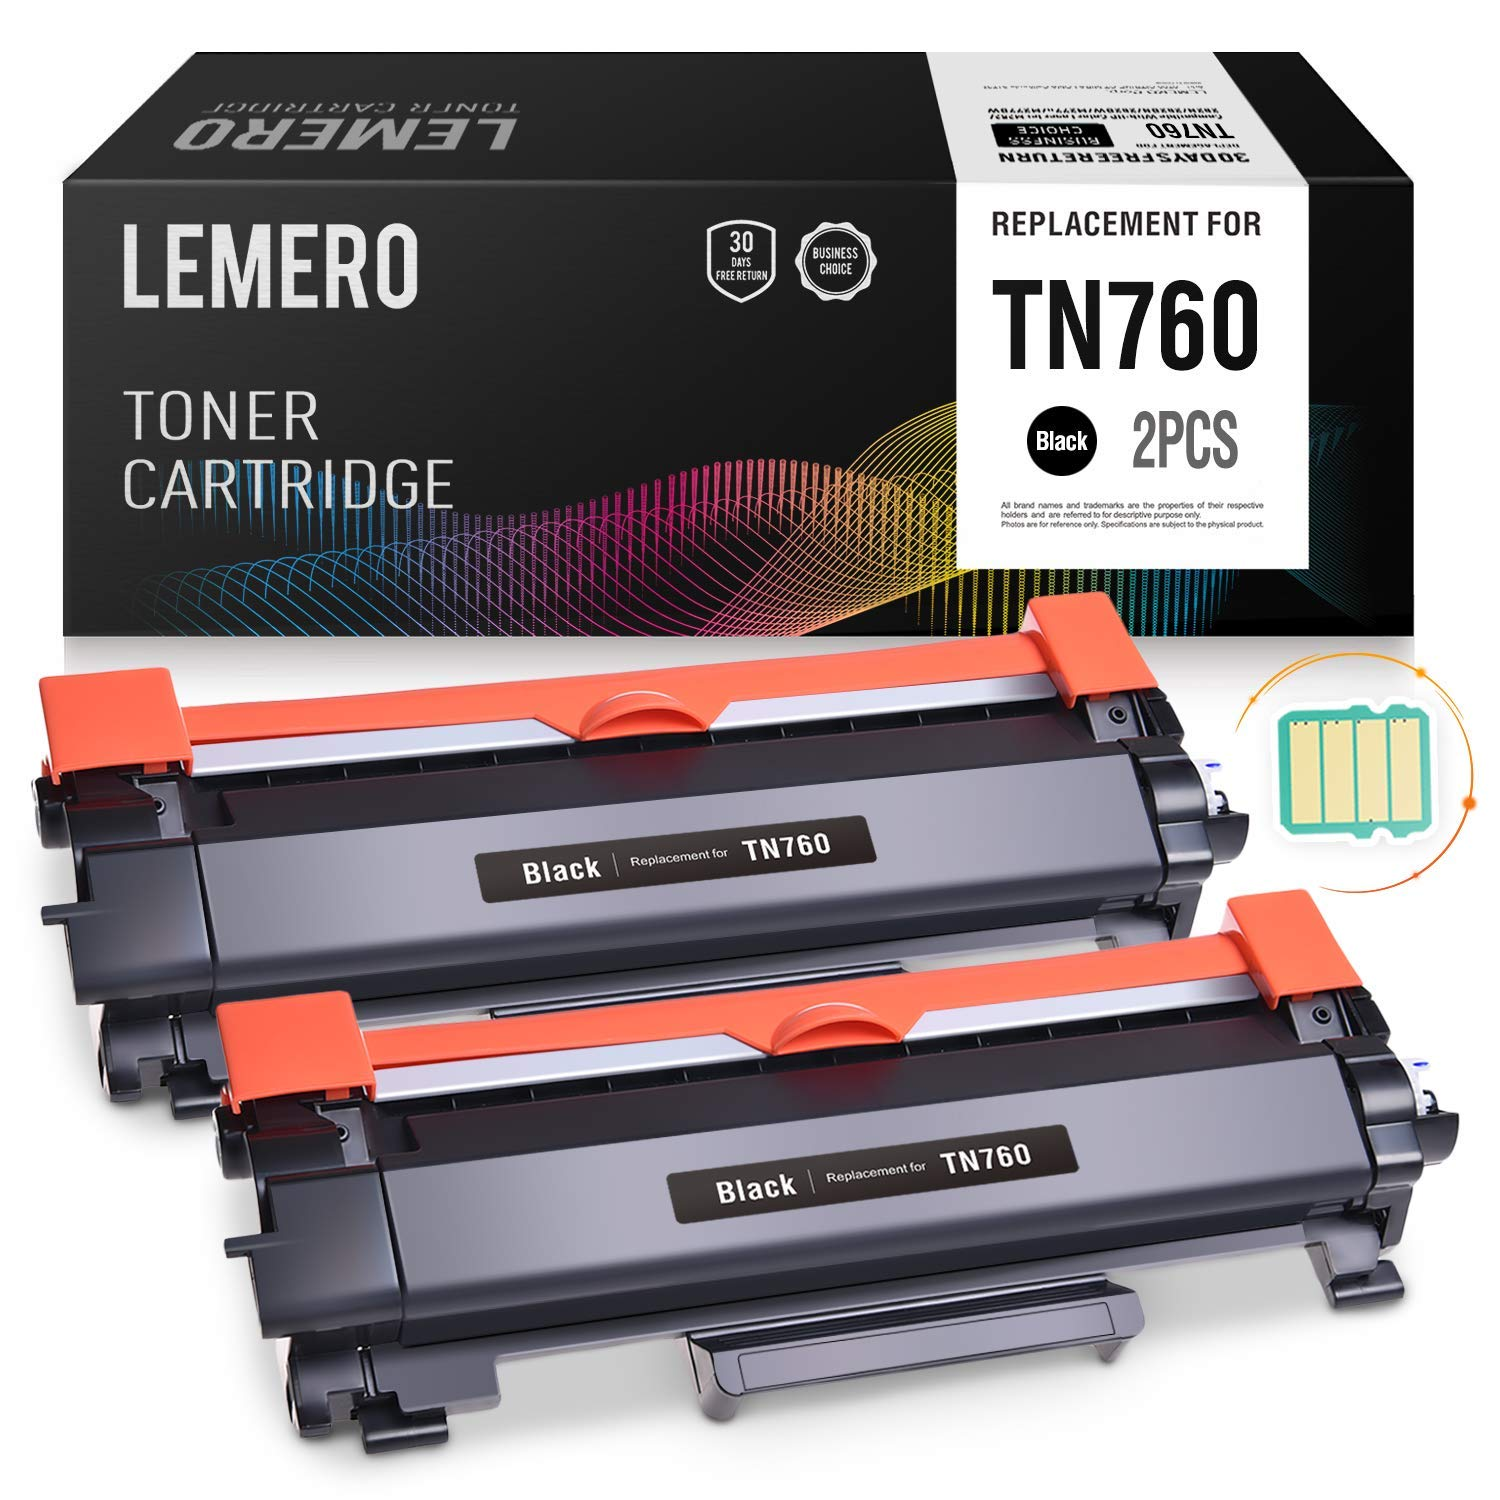 TN-770-3 Pack Supply Spot Compatible TN770 Black Toner Cartridge